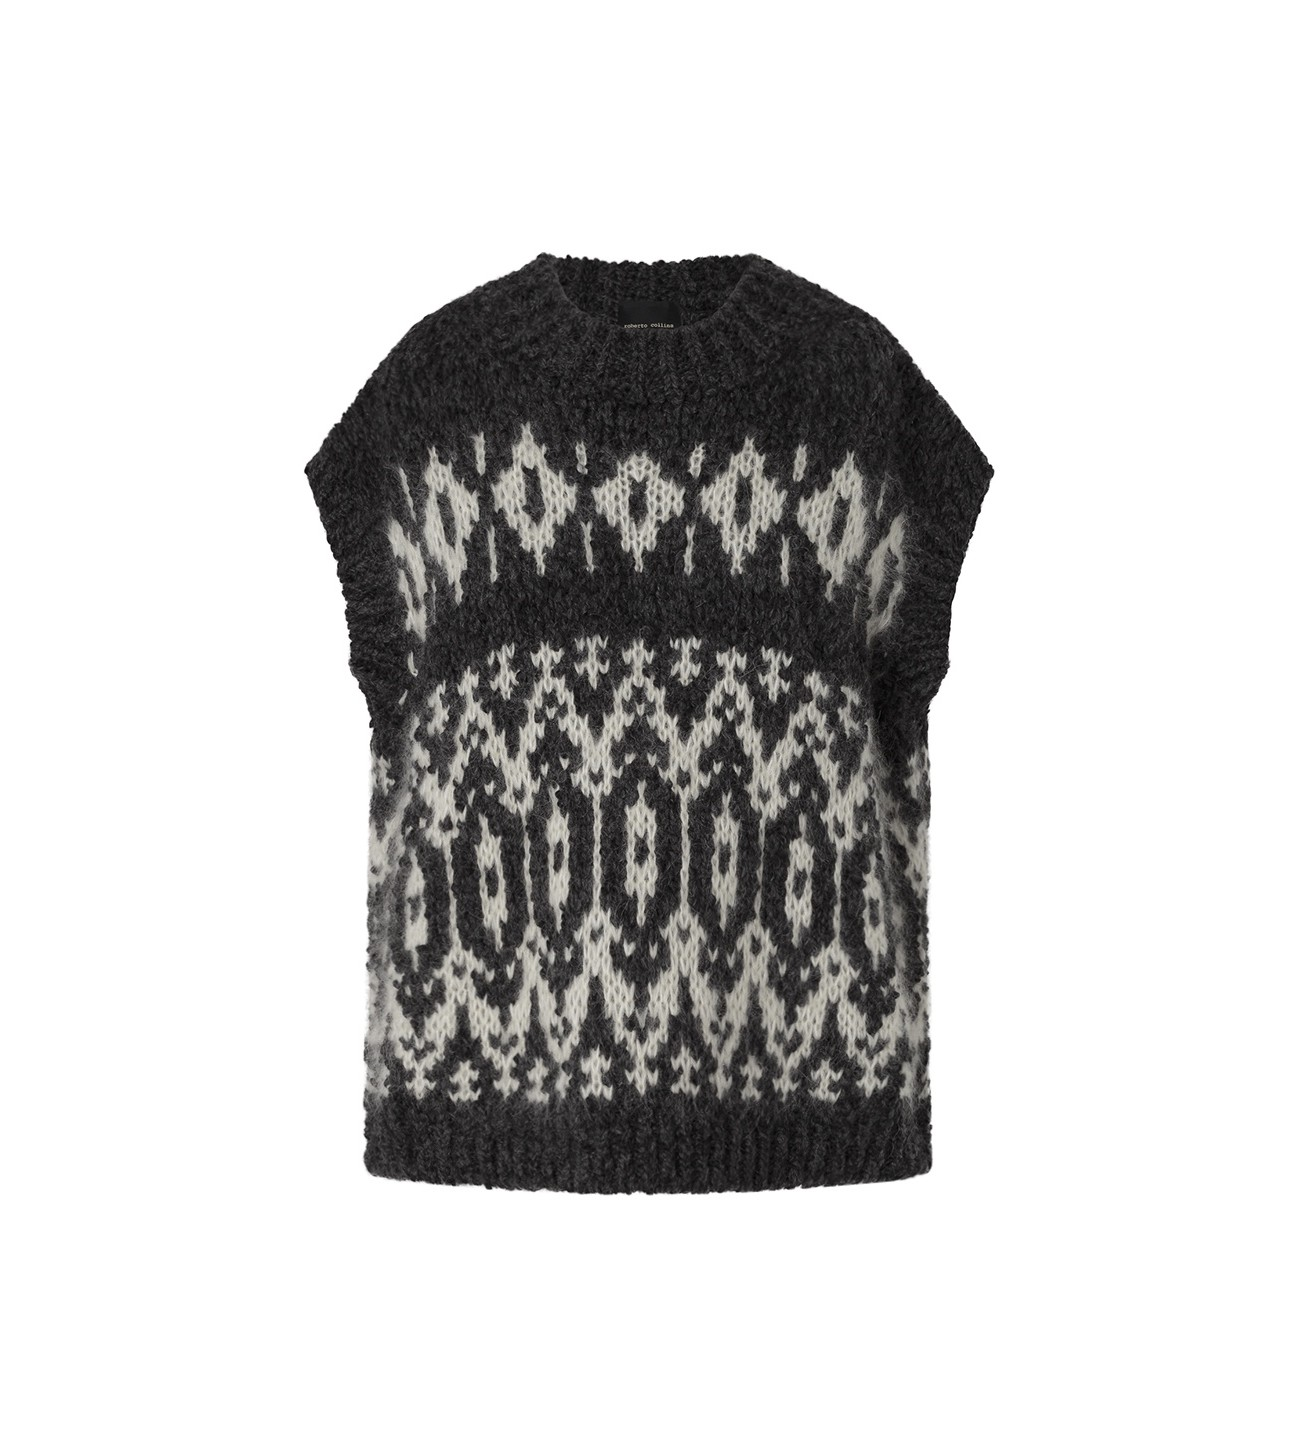 ROBERTO_COLLINA_VEST_WITH_JACQUARD_DESIGN_MARIONA_FASHION_CLOTHING_WOMAN_SHOP_ONLINE_F42016